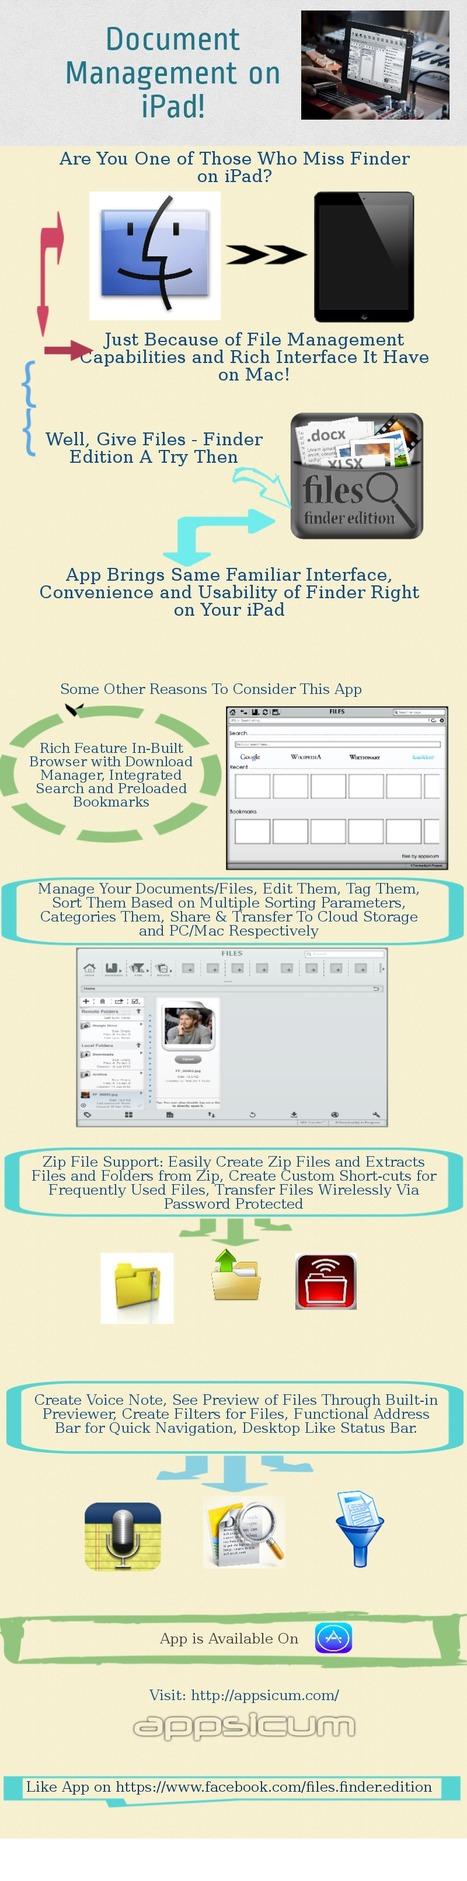 Document Management on iPad With Files - Finder Edition   Appsicum Apps   Scoop.it